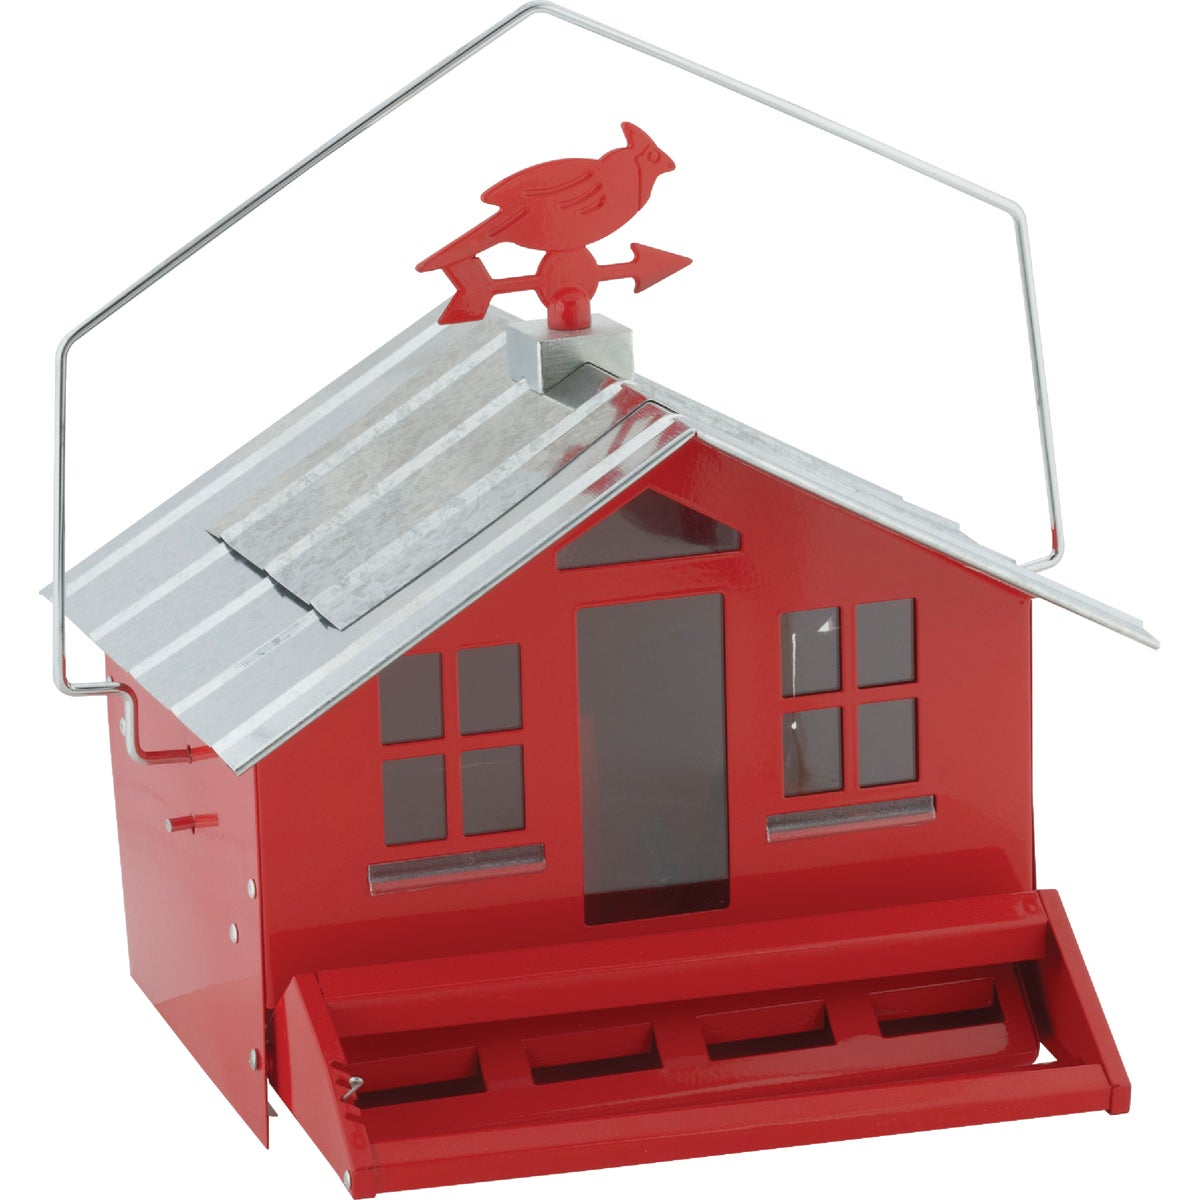 SQUIRREL PROOF FEEDER - 338 by Woodstream Corp